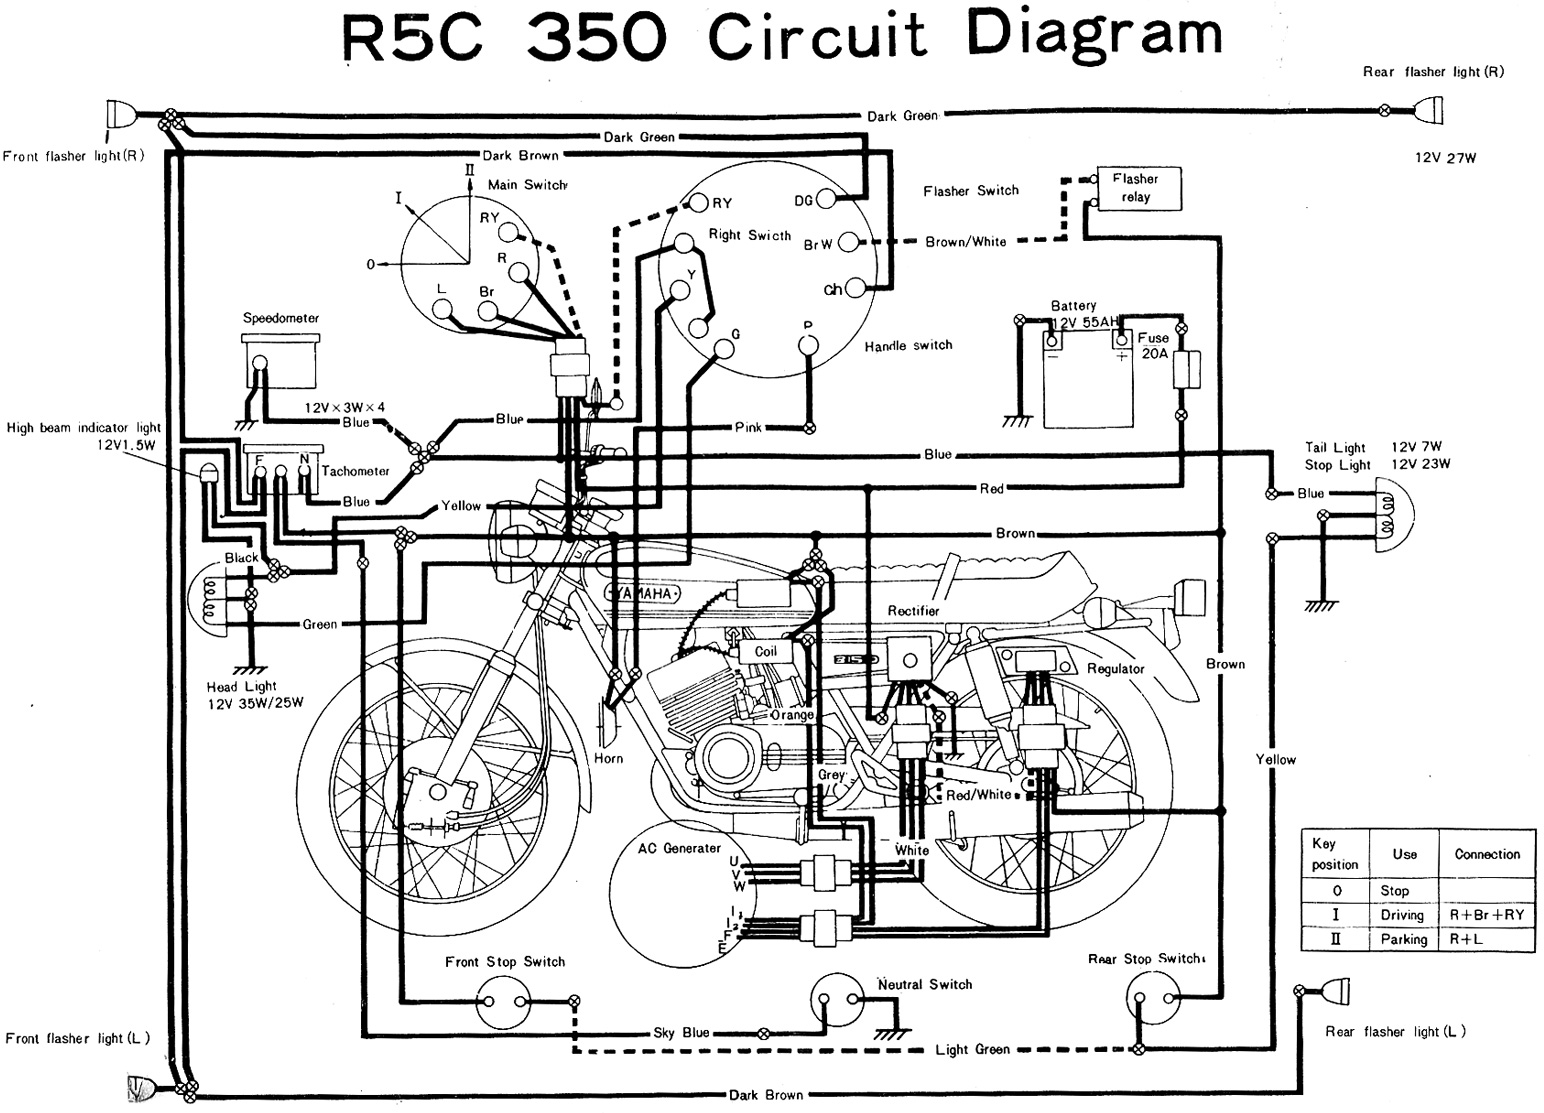 Yamaha RD350 R5C Wiring Diagram yamaha rd350 r5c wiring diagram evan fell motorcycle worksevan yamaha motorcycle wiring diagrams at n-0.co